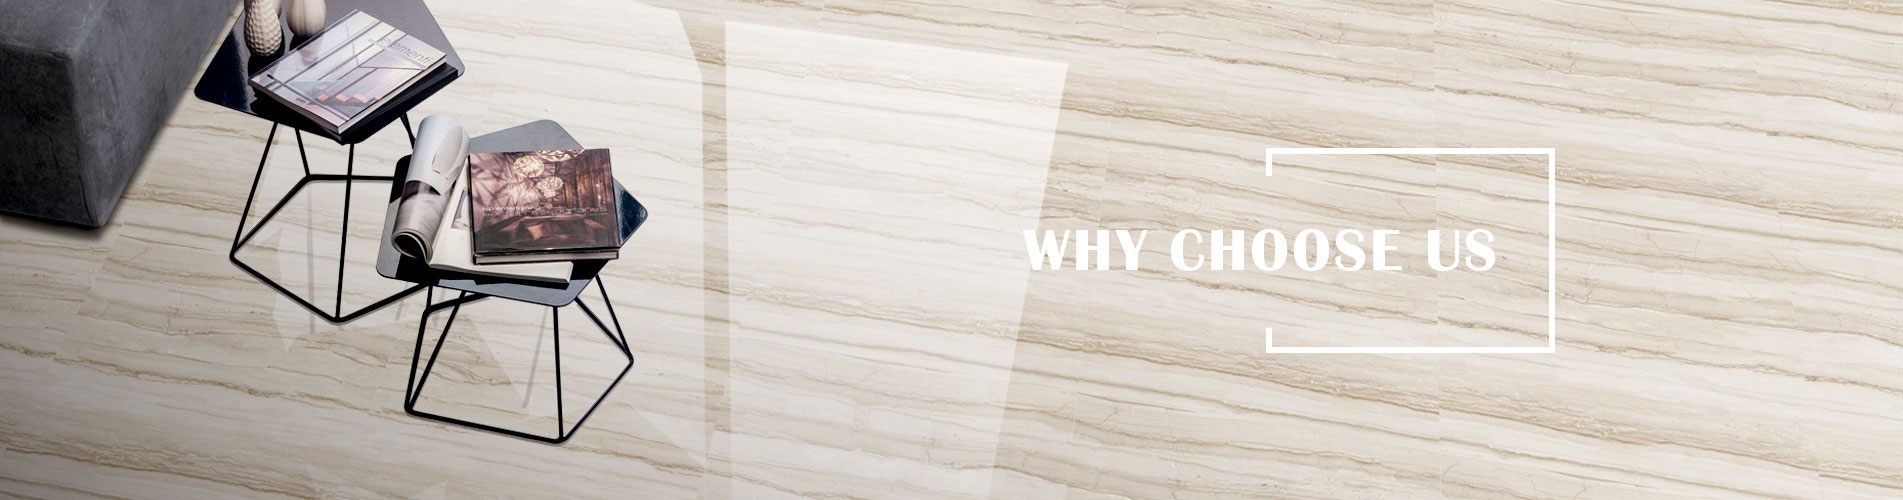 why choose us banner